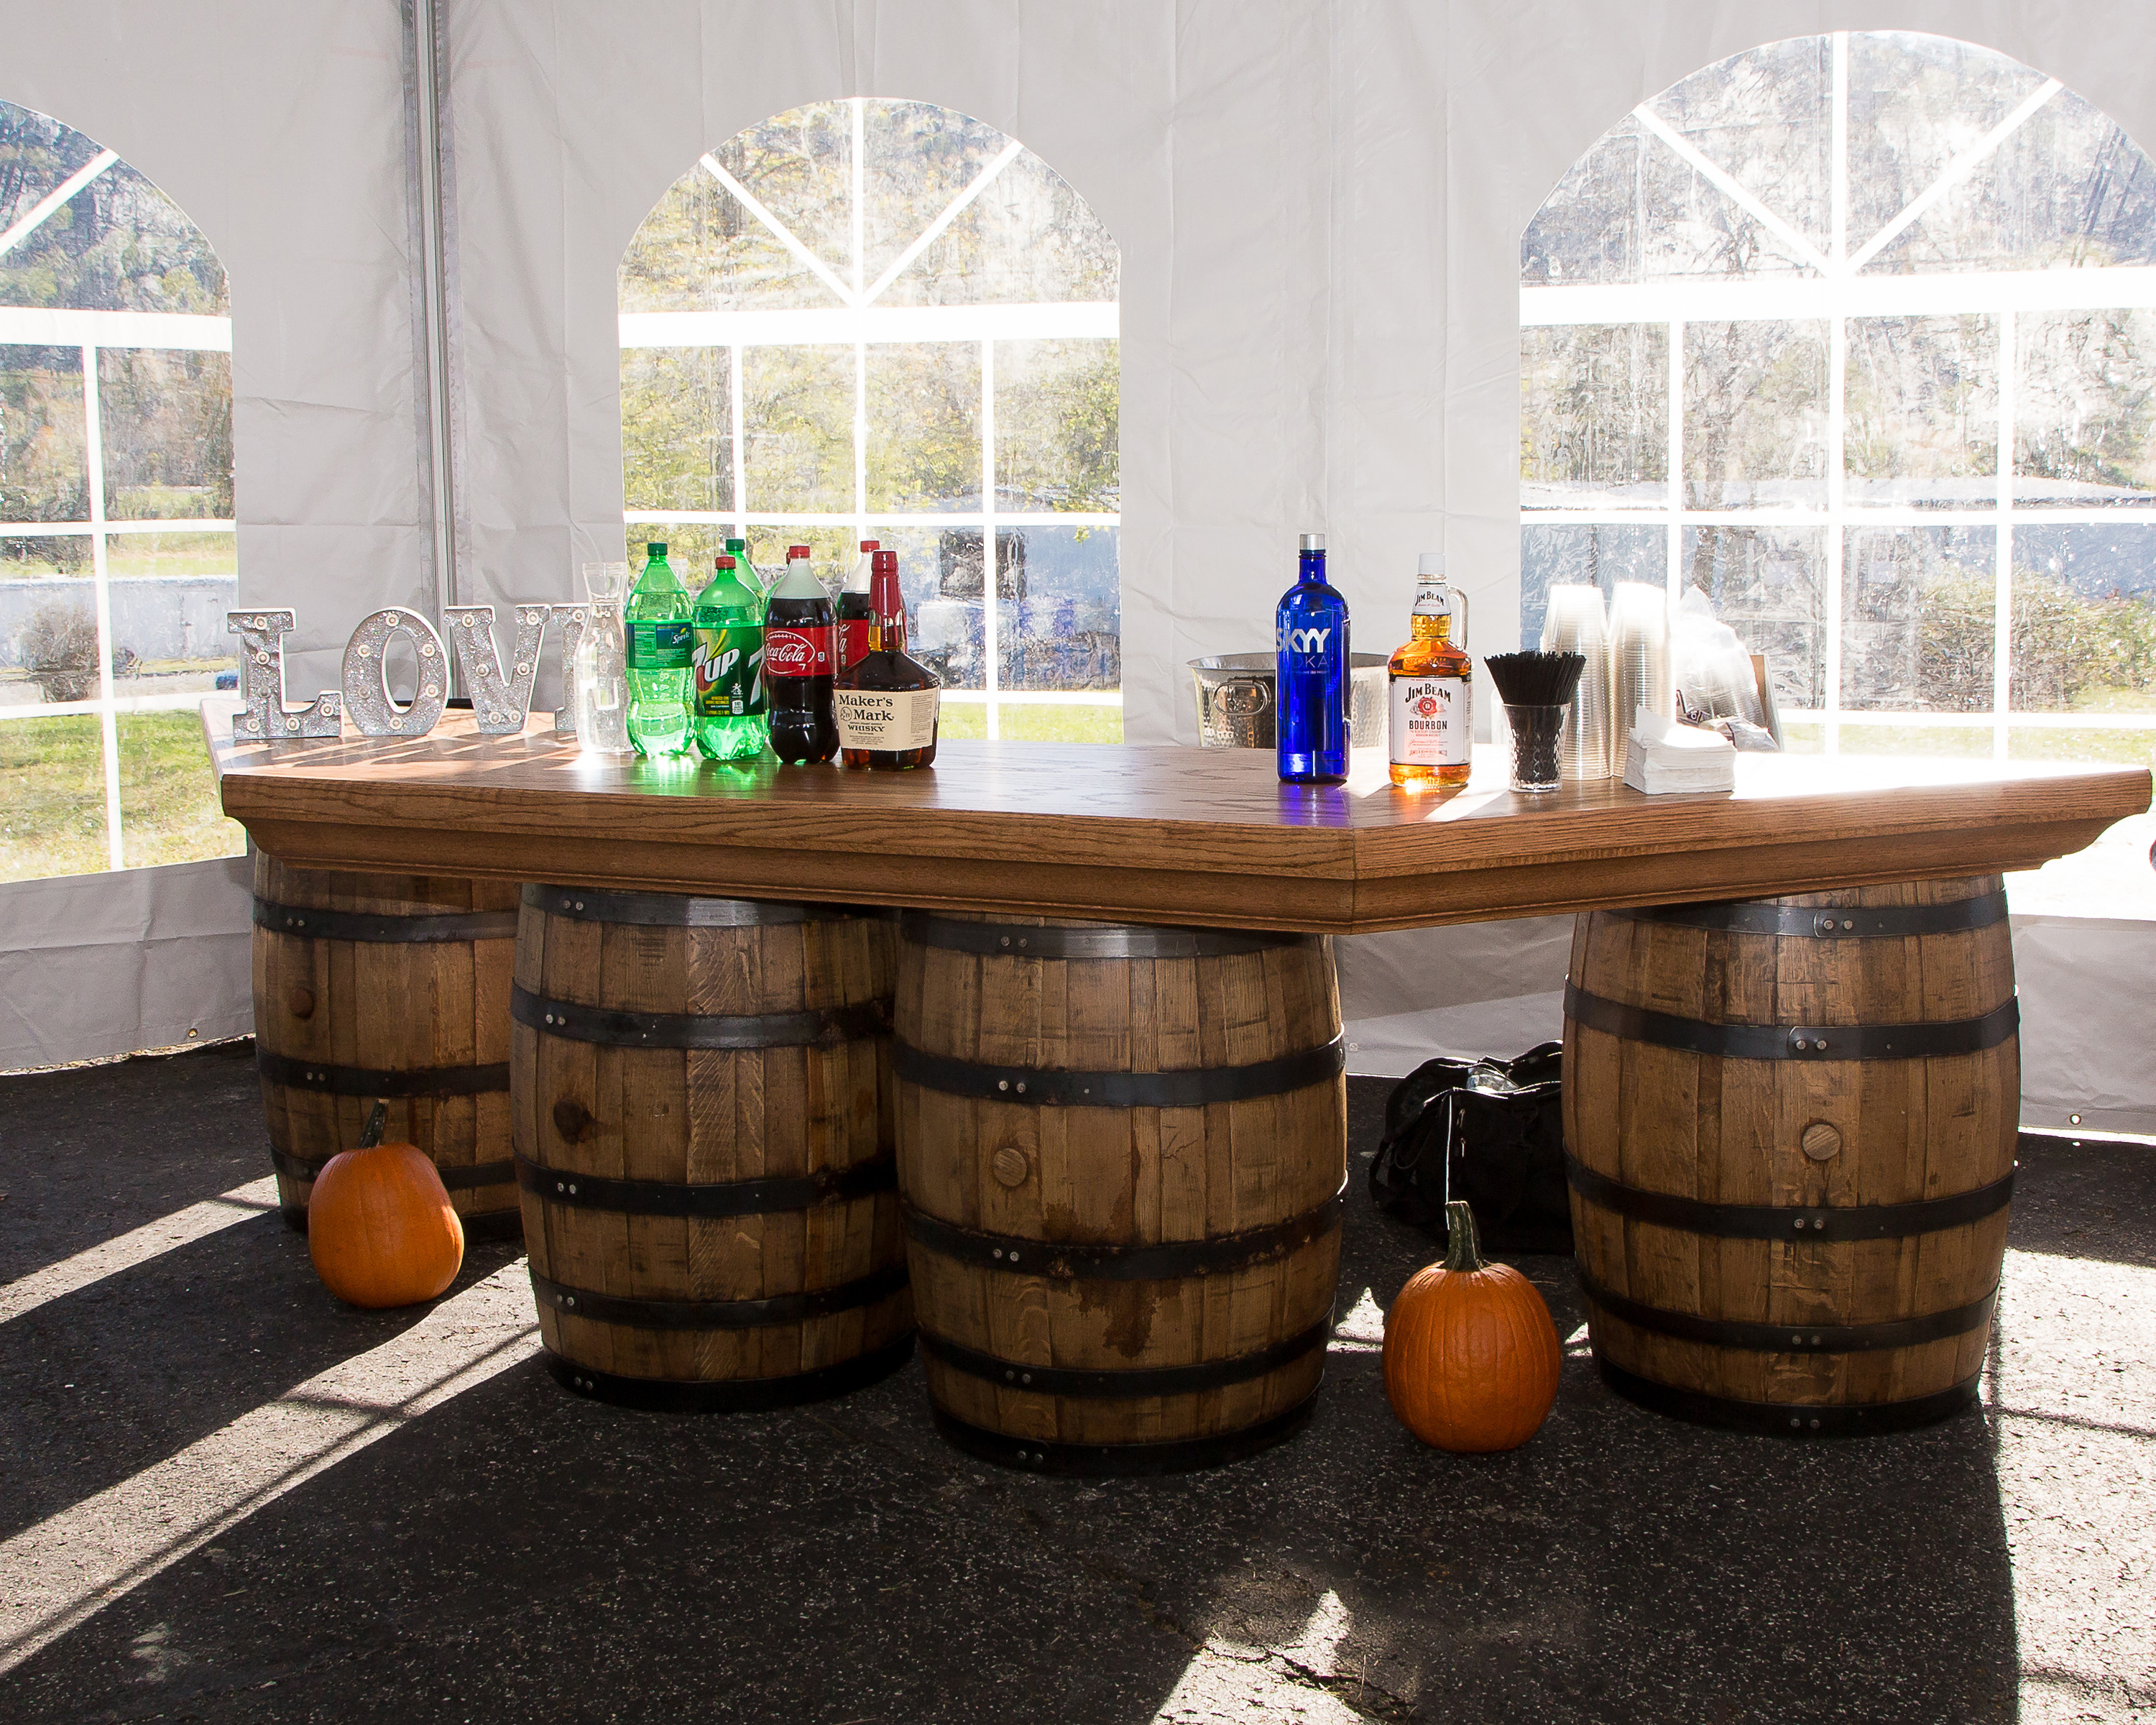 Tent Rental Accessories Tables Chairs Flooring  : Whiskey Barrel Bar from mhtentrentals.com size 3000 x 2400 jpeg 2331kB